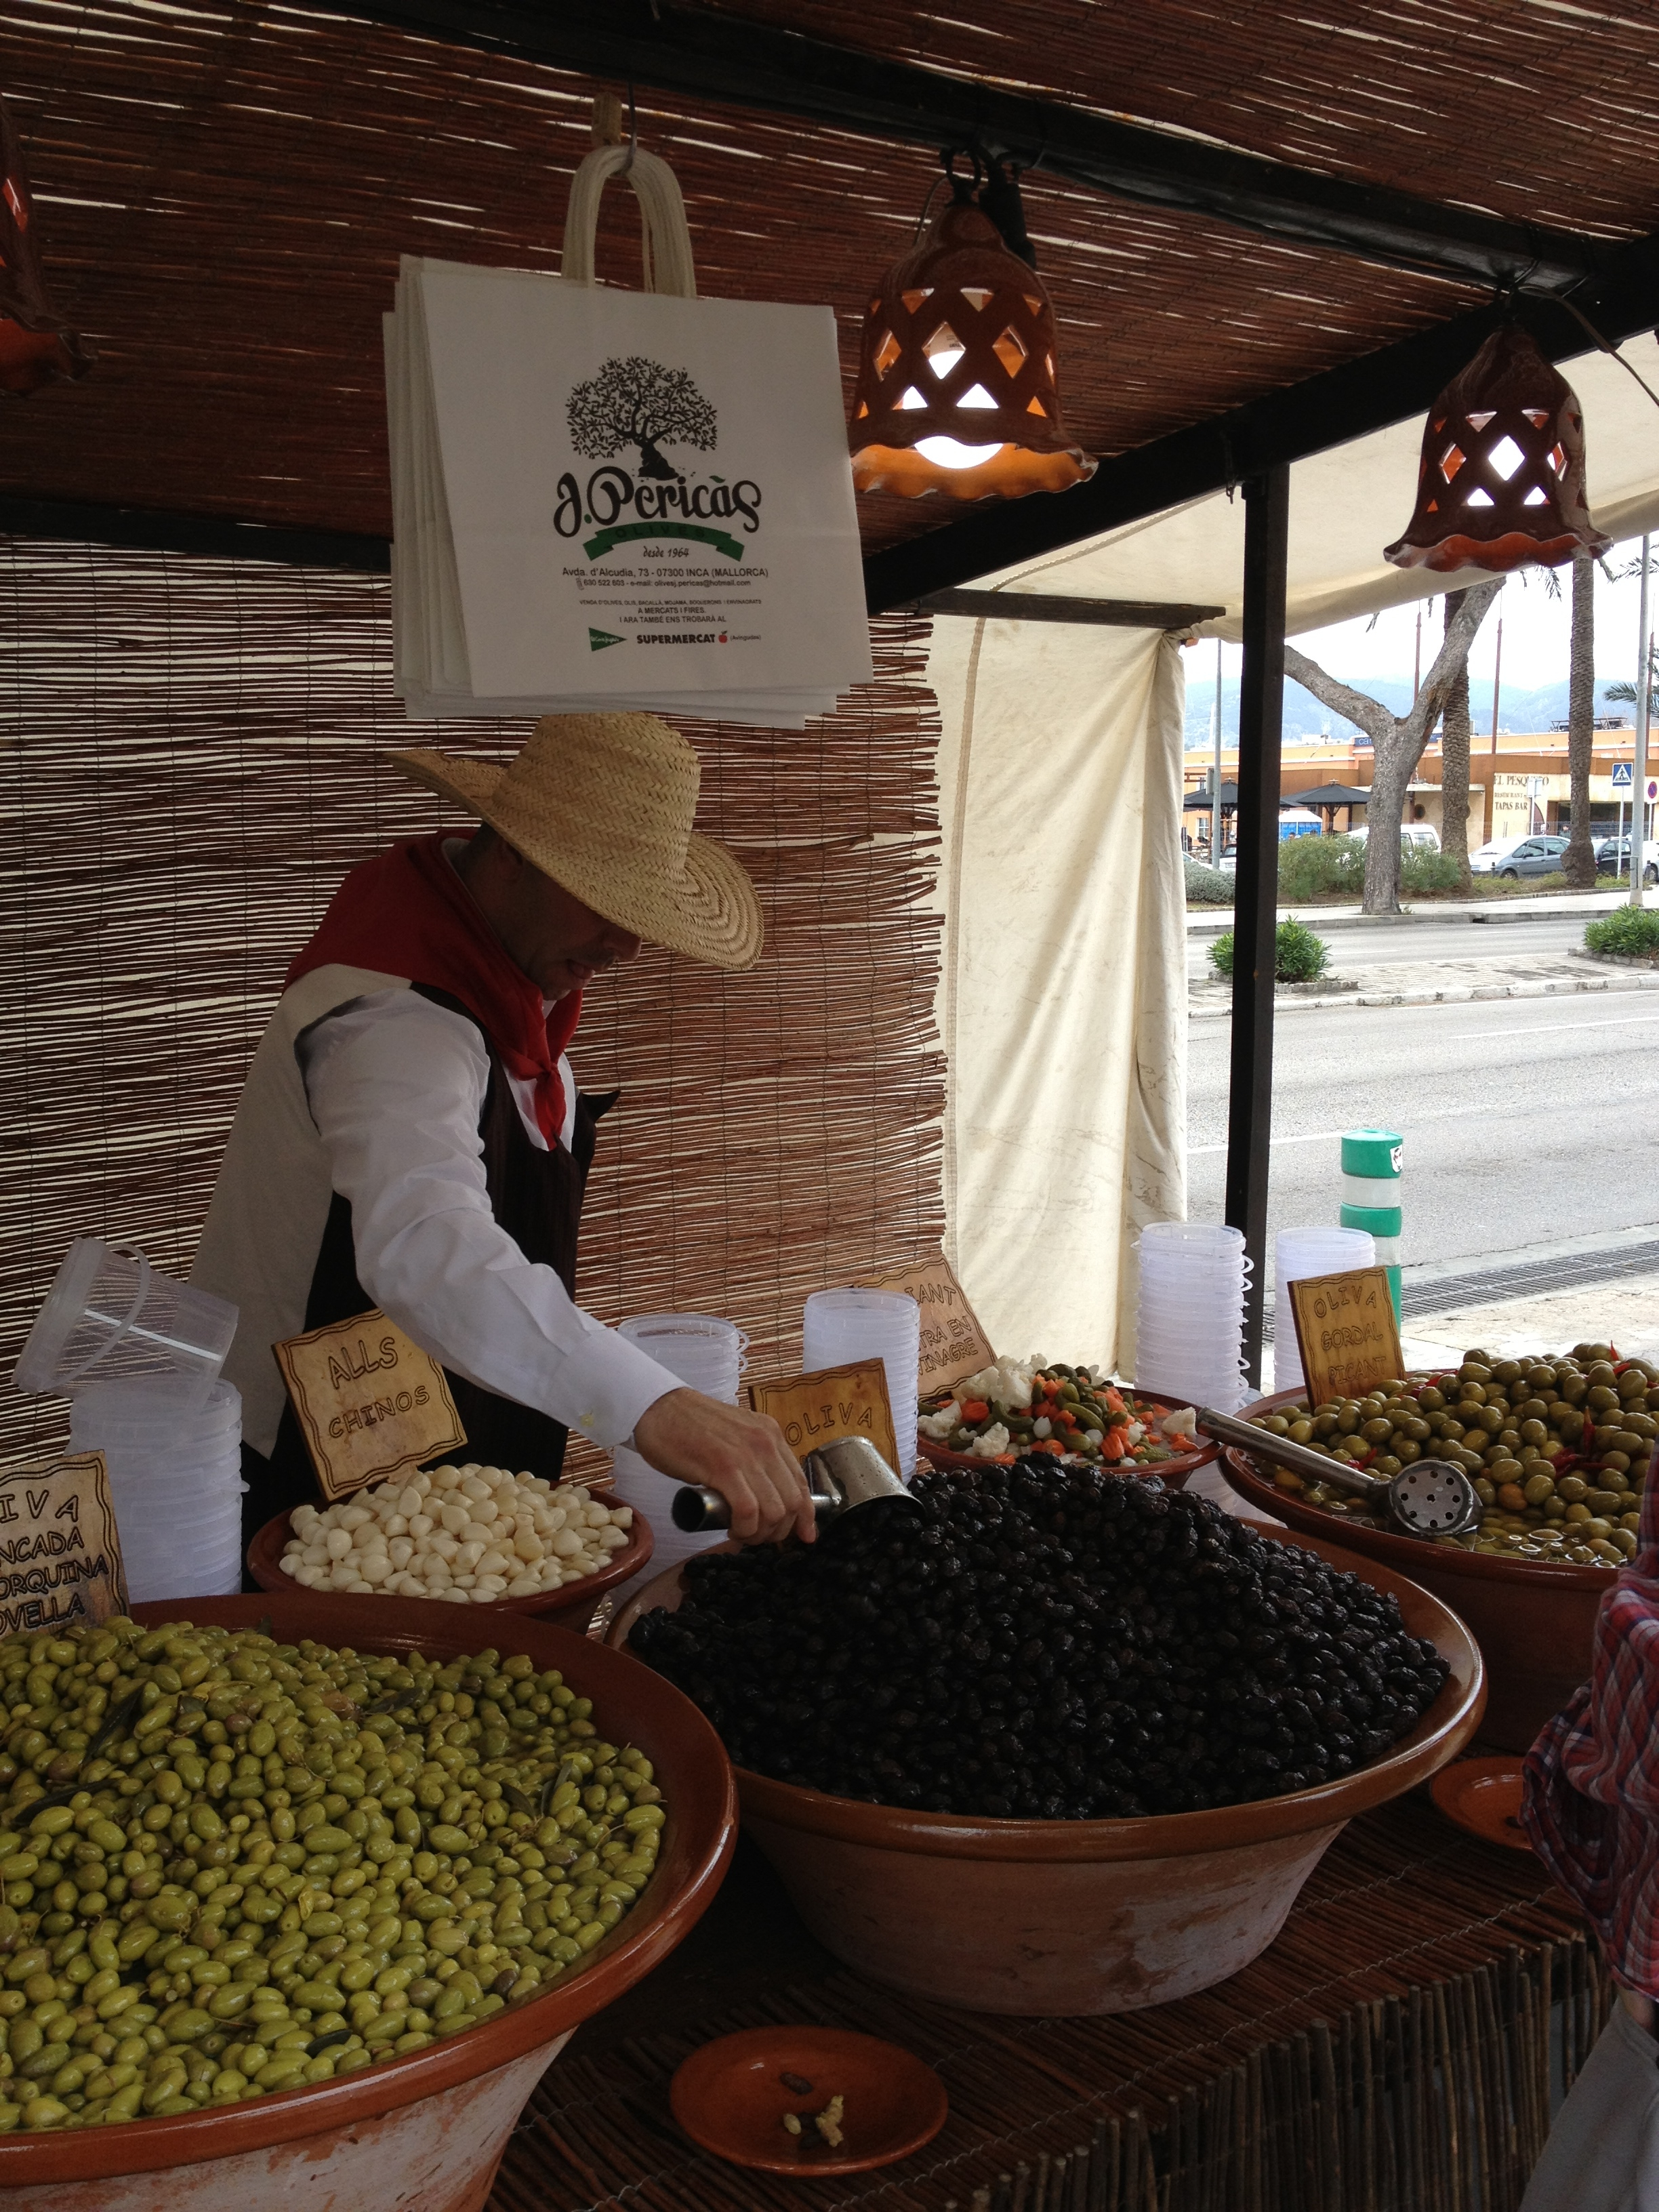 mallorca private tourguides, majorcan olives,medieval market in Palma